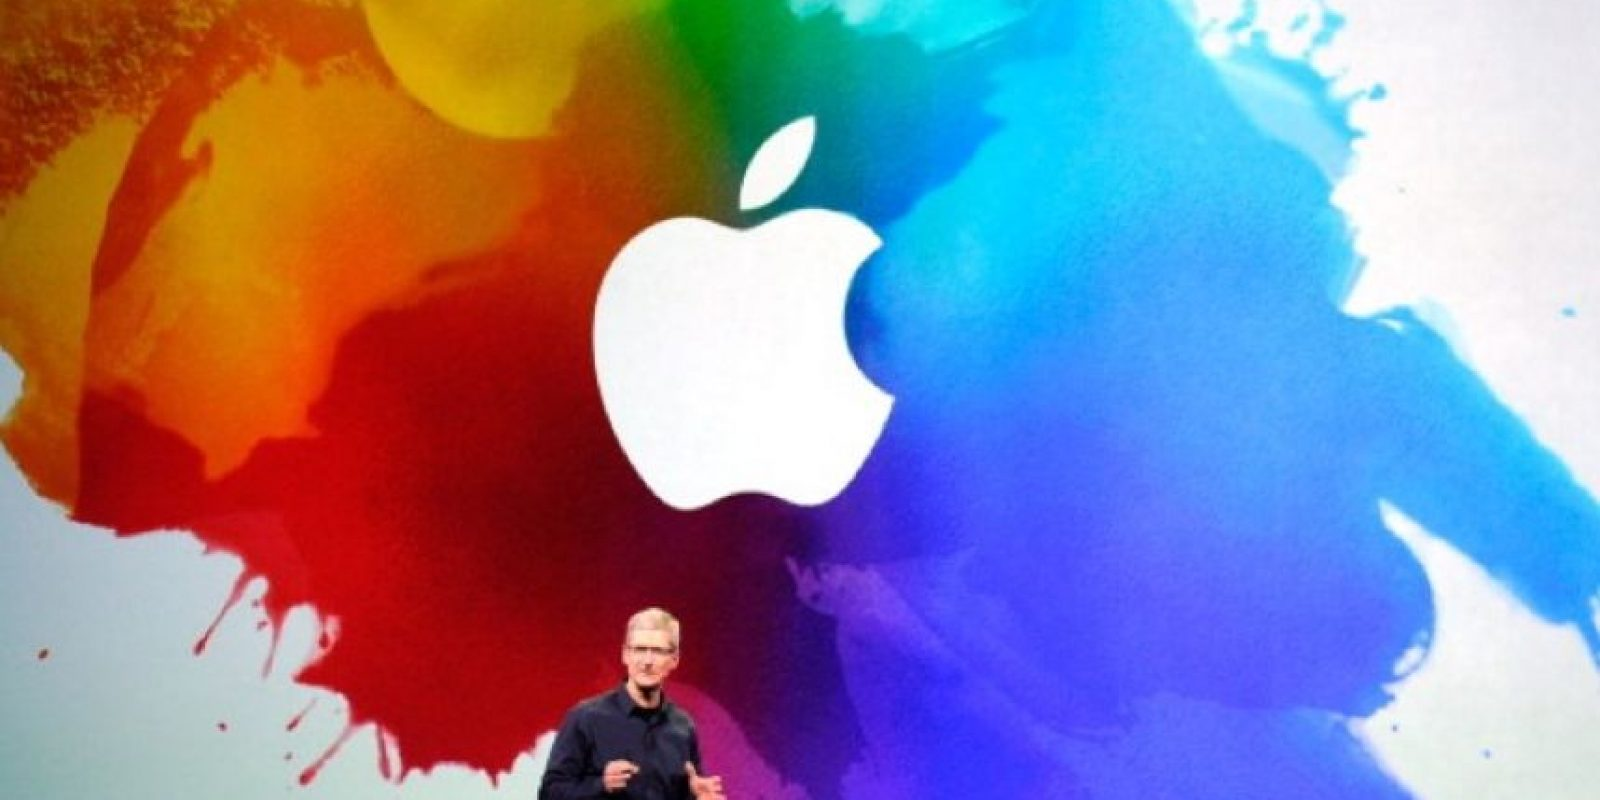 Apple vale 170 mil 276 millones de dólares. Foto: Getty Images